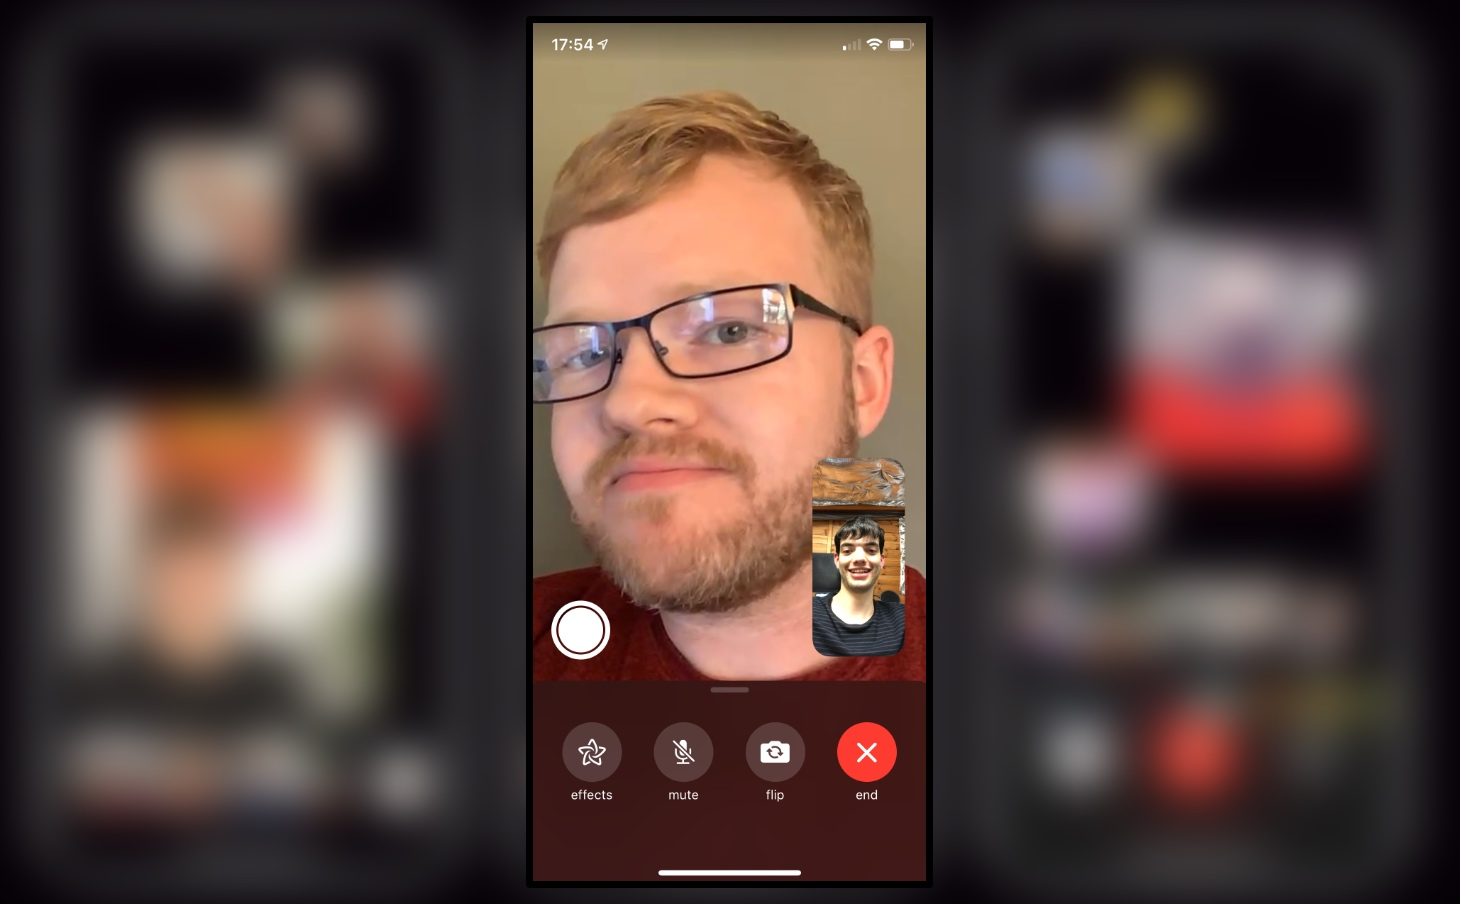 Apple releases iOS 12.1.1 with improved FaceTime UI, much more